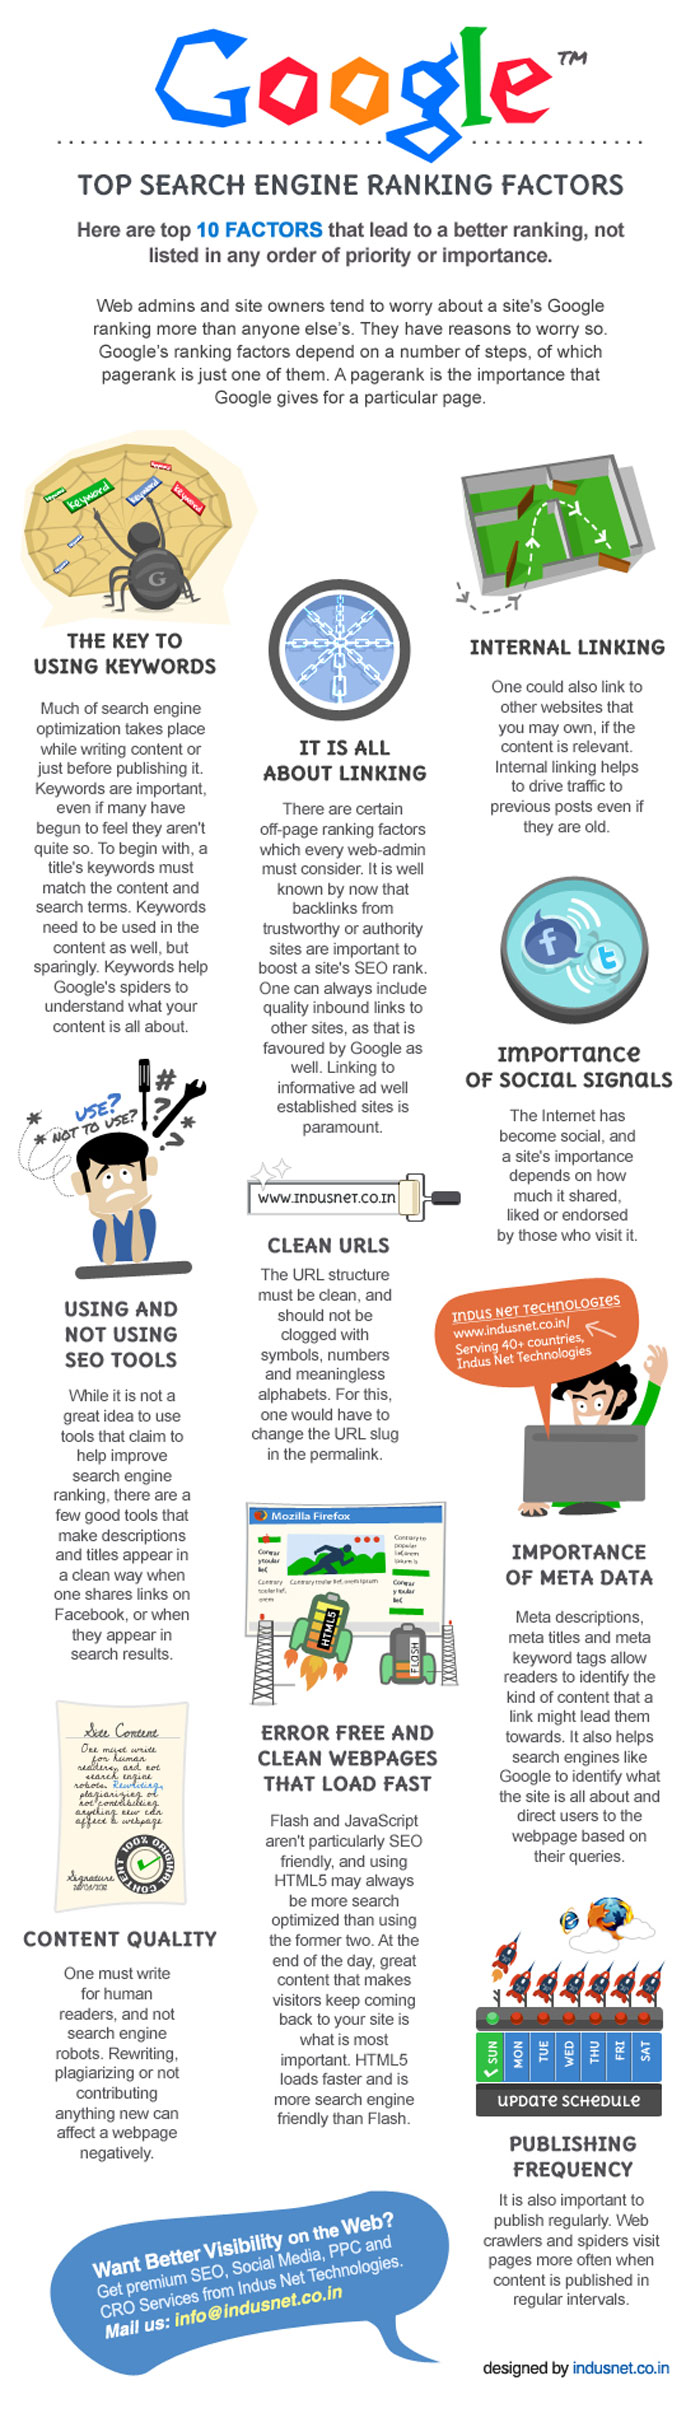 Top Search Engine Ranking Factors 2012 Infographic